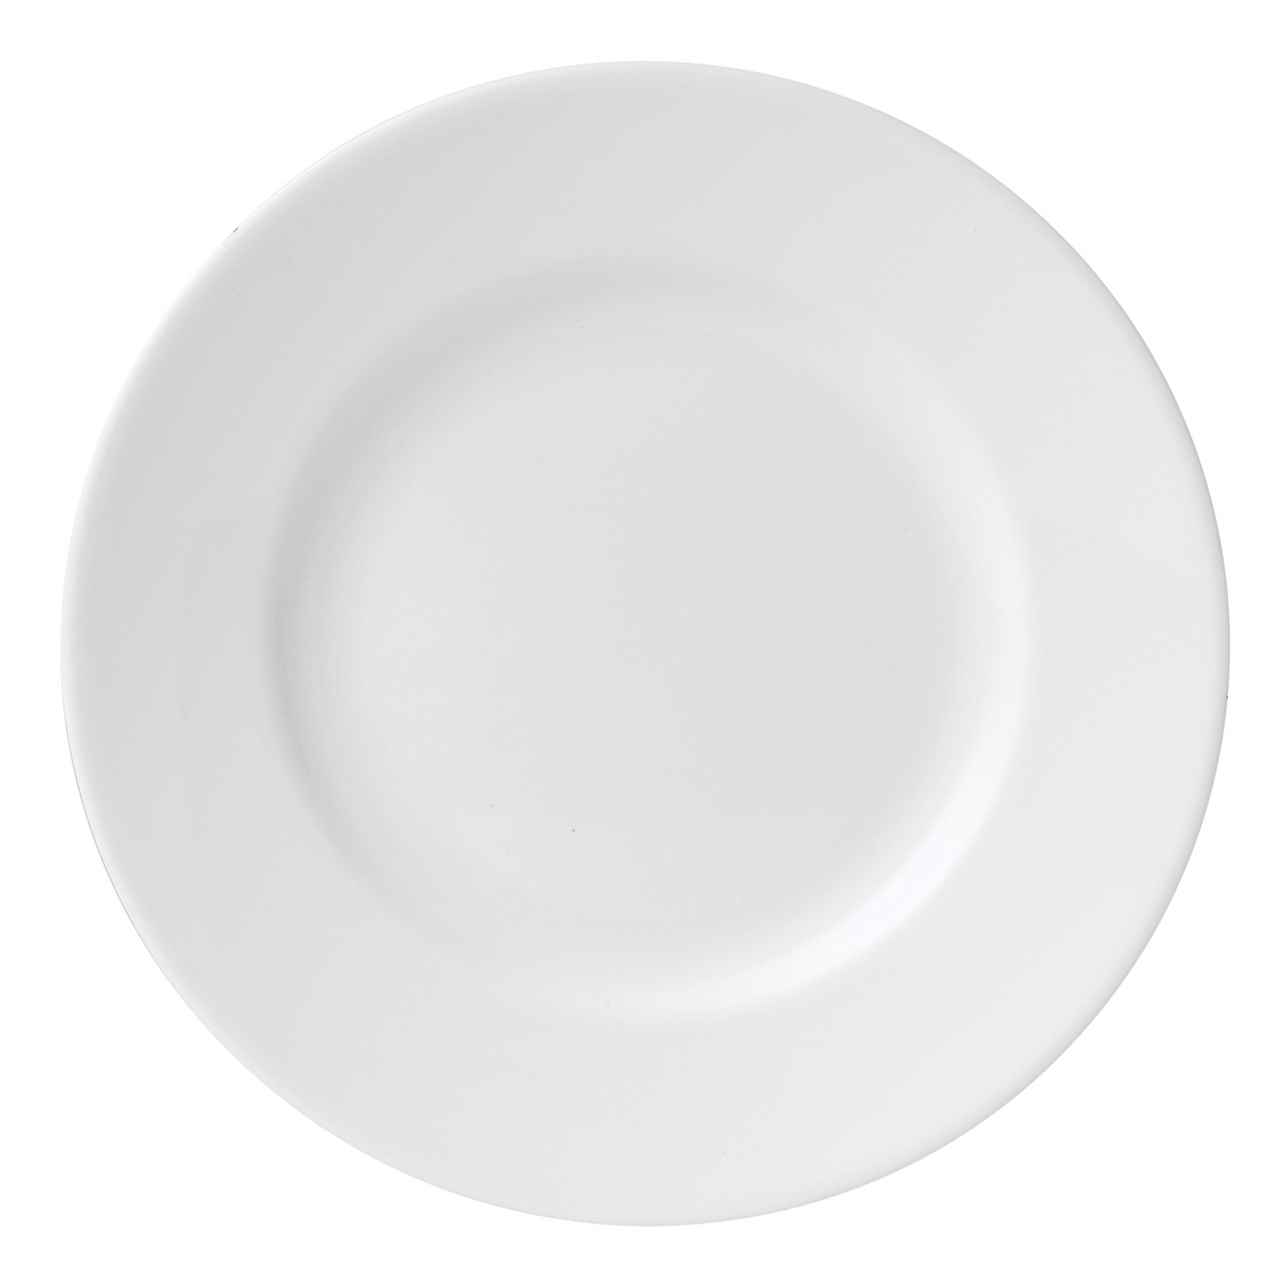 Wedgwood White Small Plate 15cm